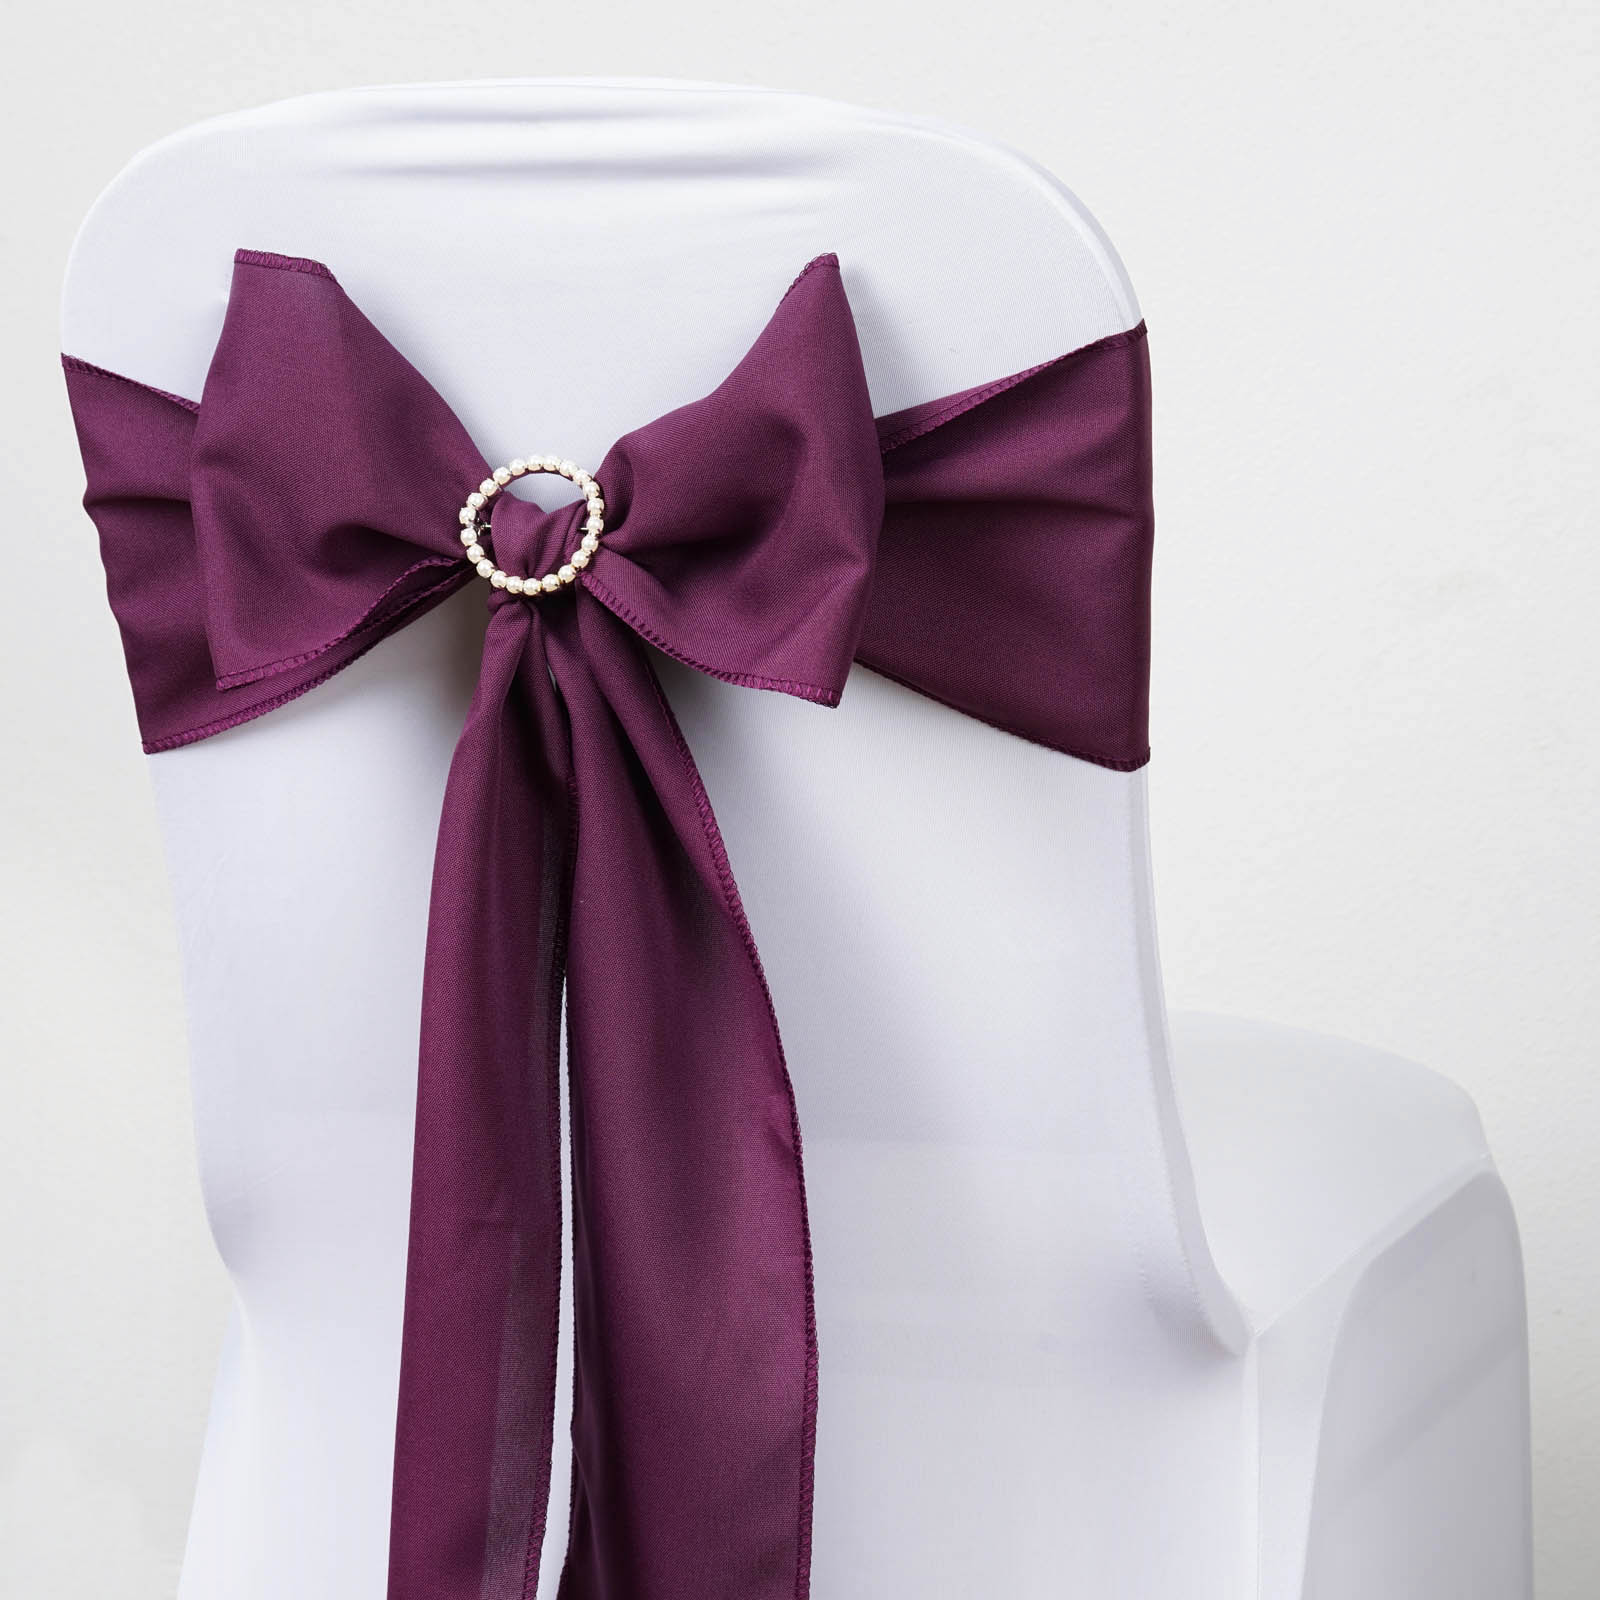 polyester chair sashes wholesale hanging cocoon ikea bows ties wedding reception